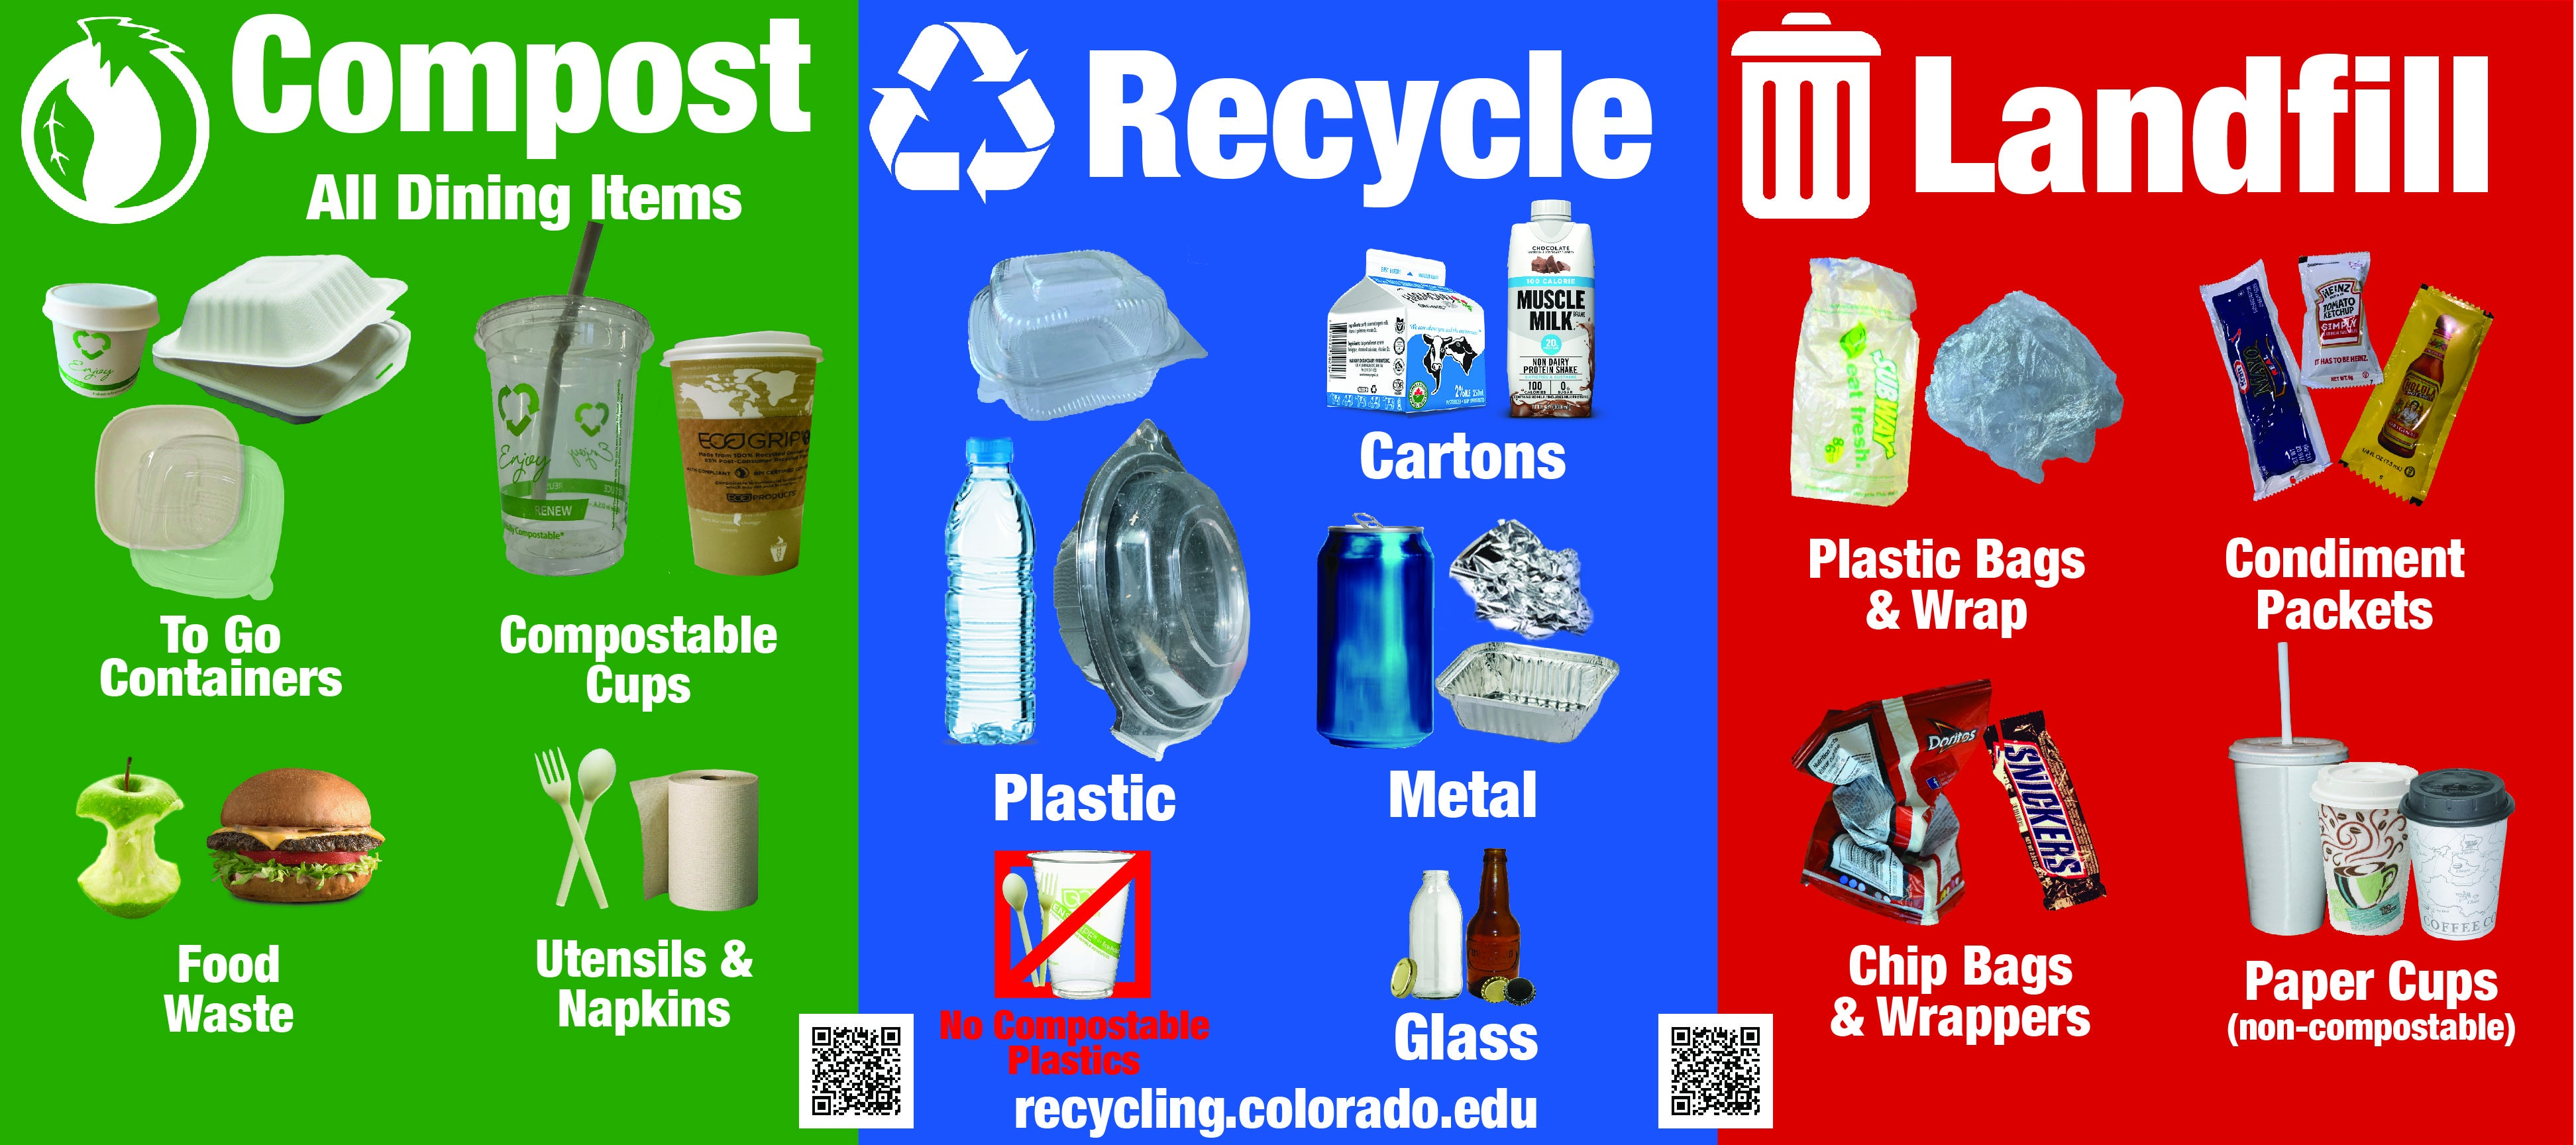 Compost, Recycle, Landfill items from Dining Centers